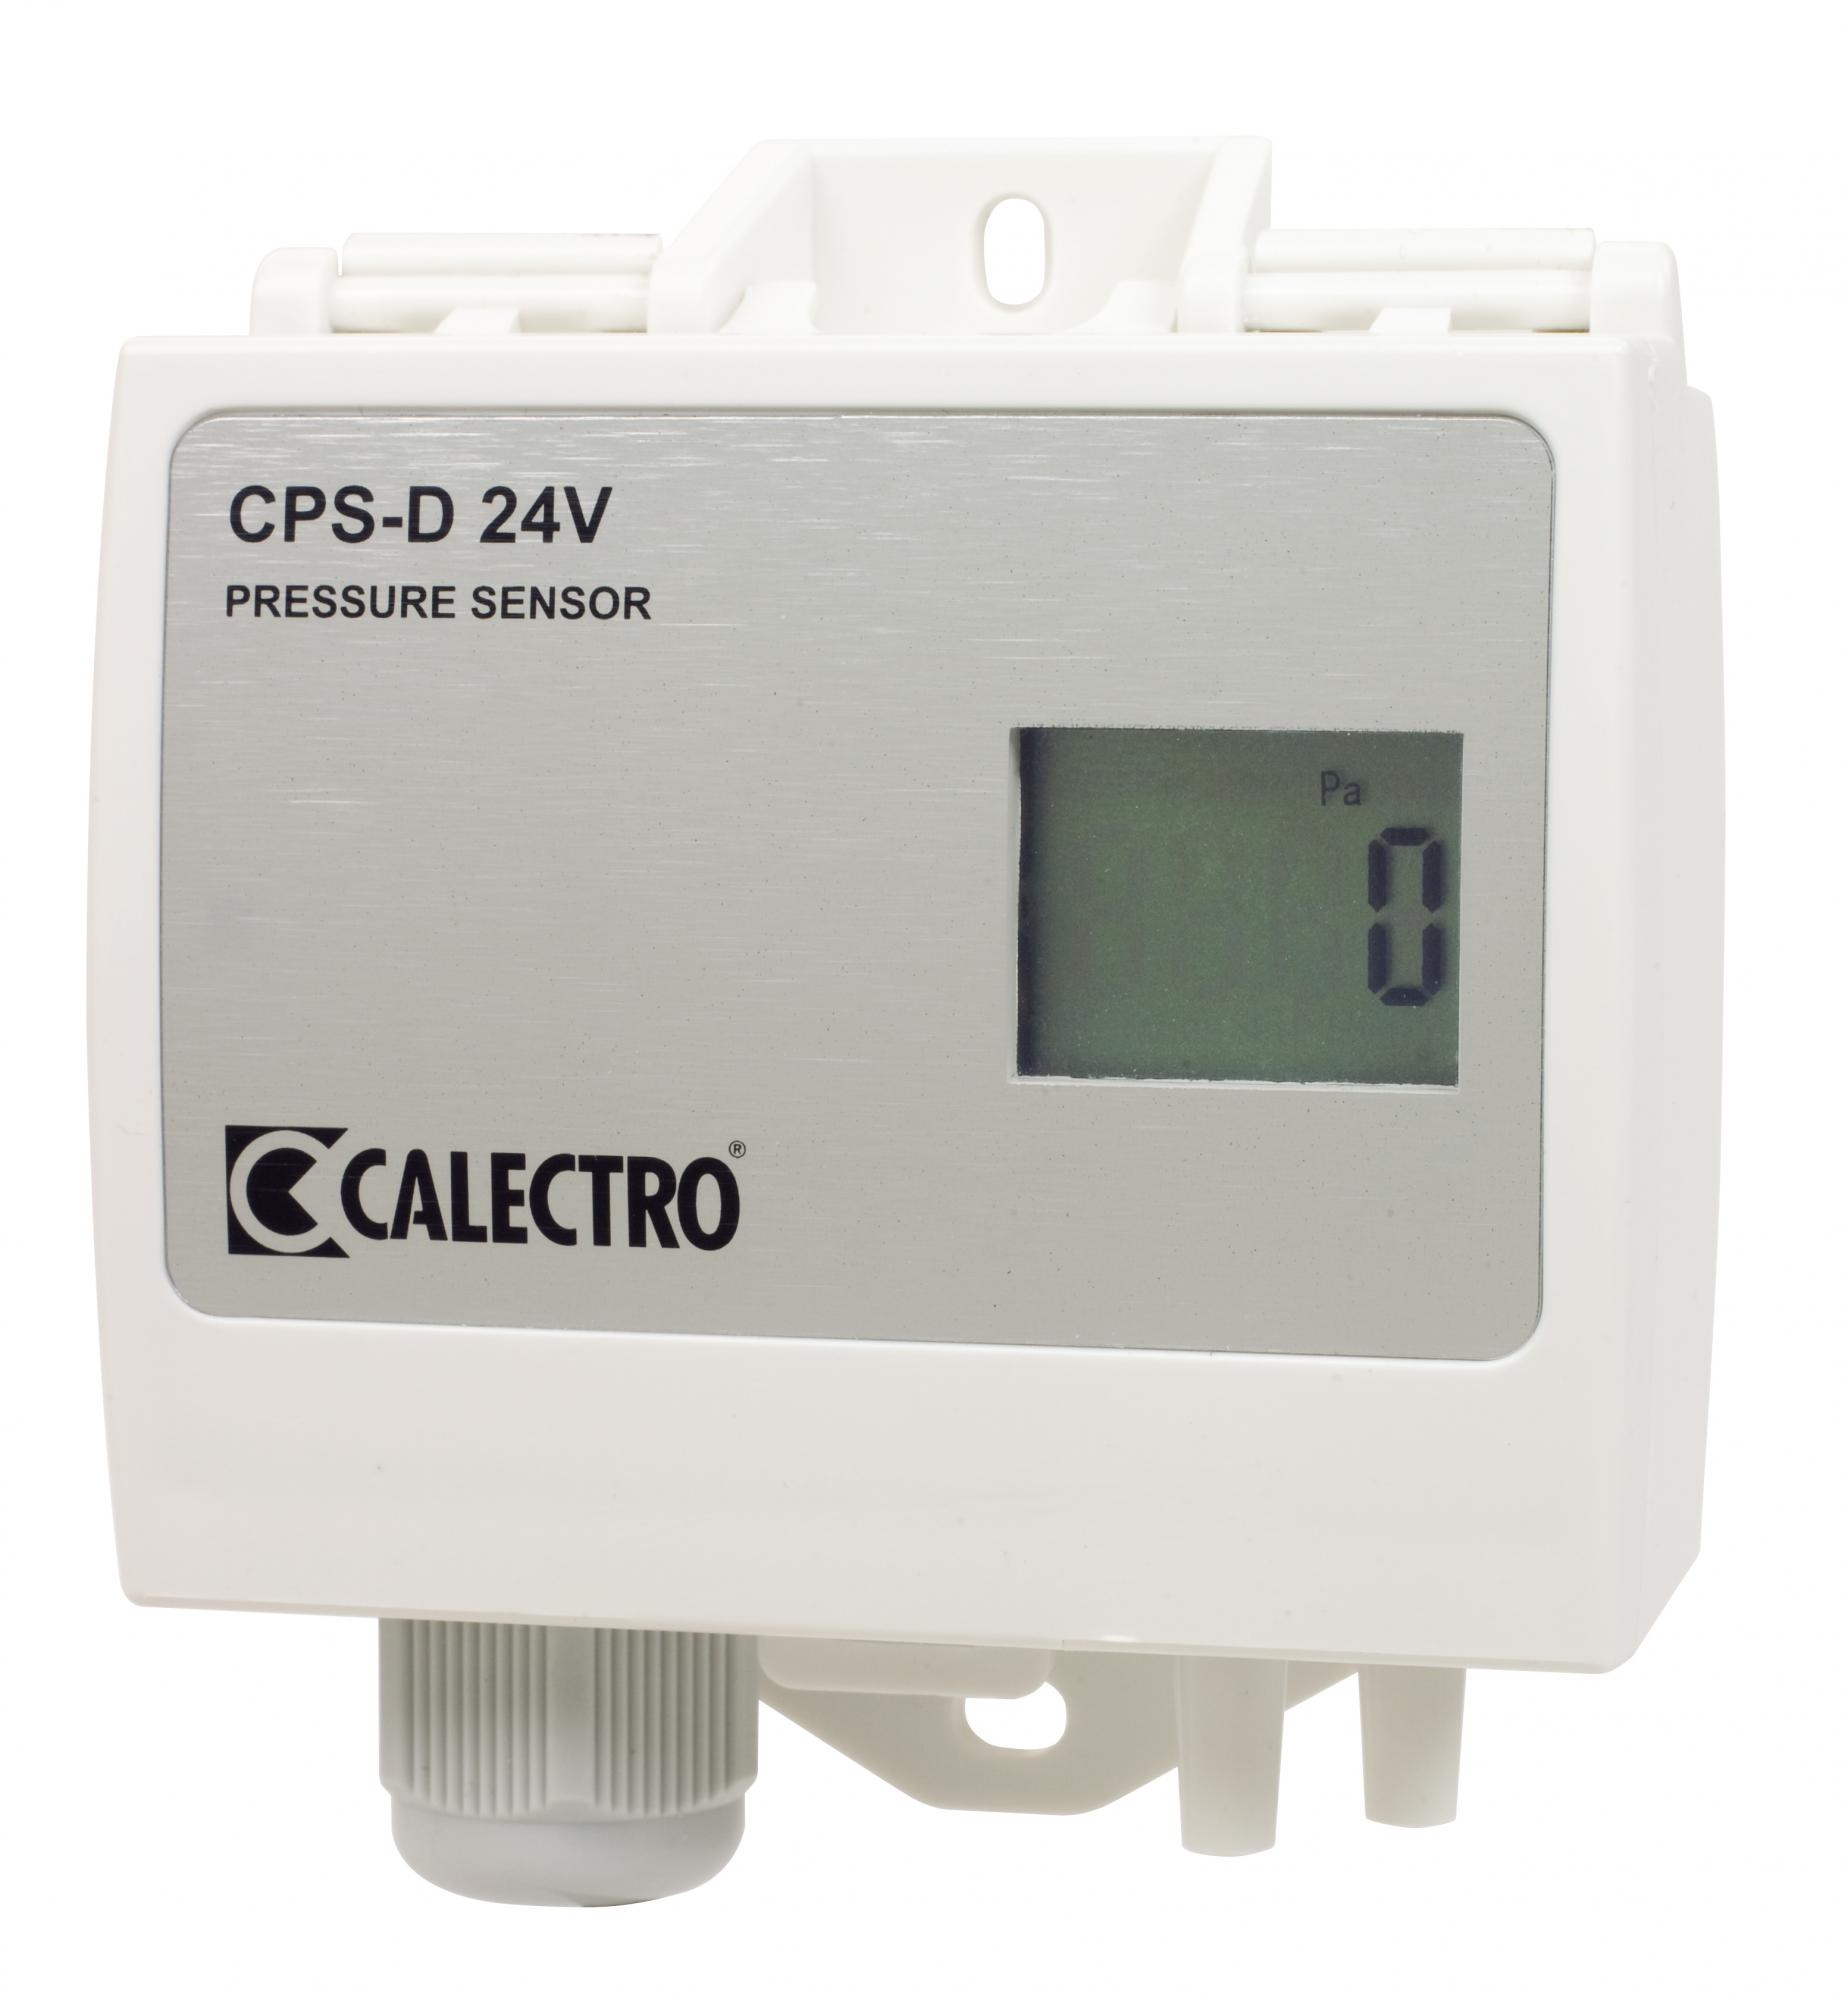 CPS-D-24V Calectro